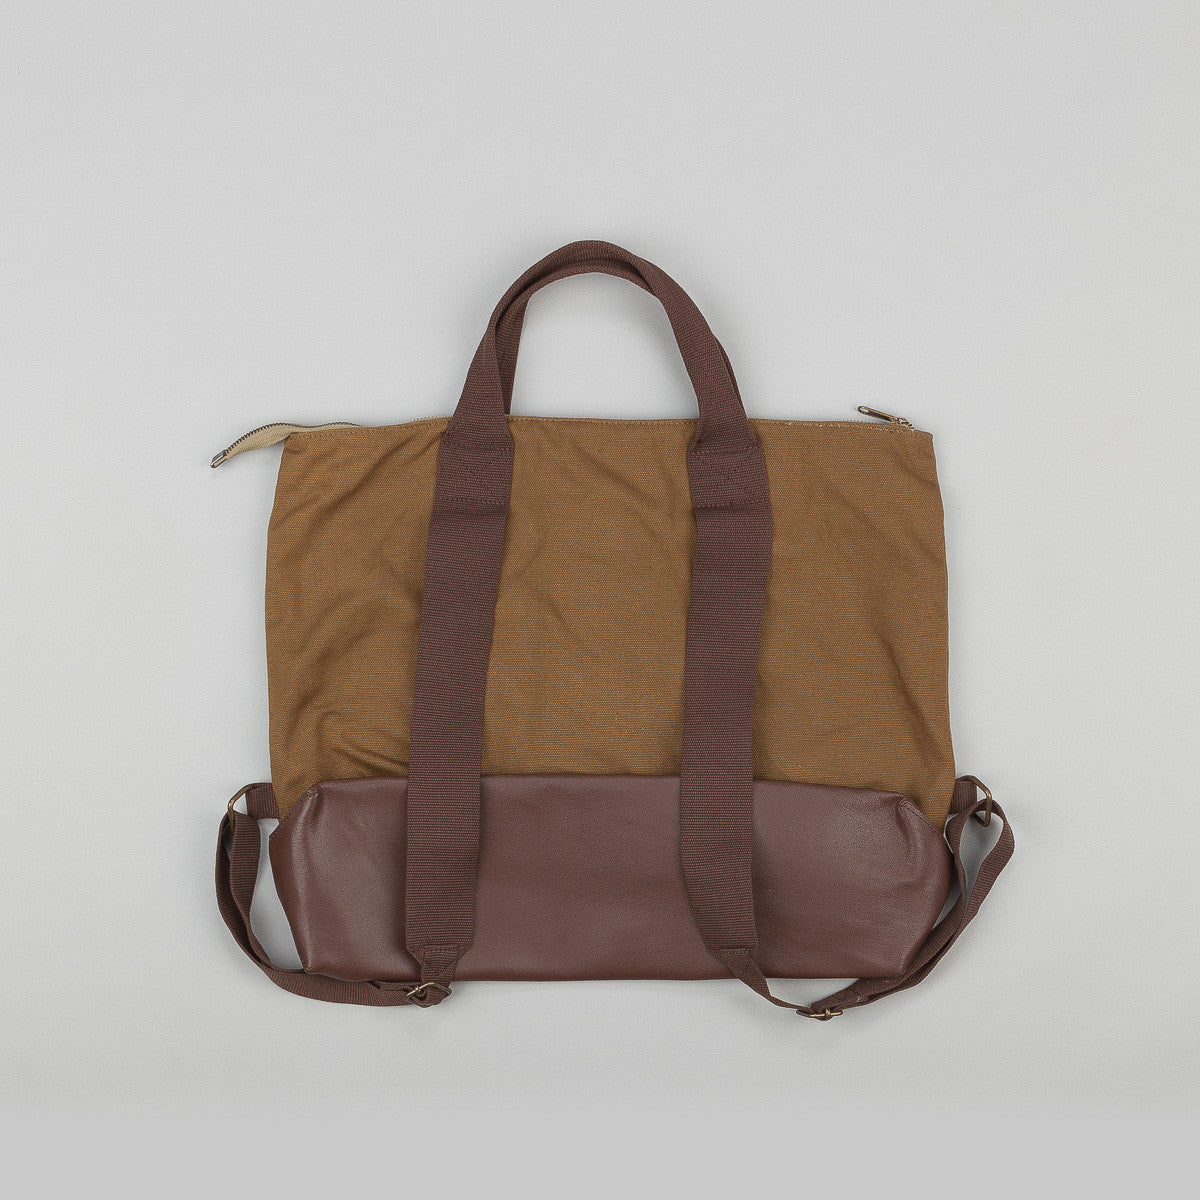 Penfield Underhill Bag - Tan